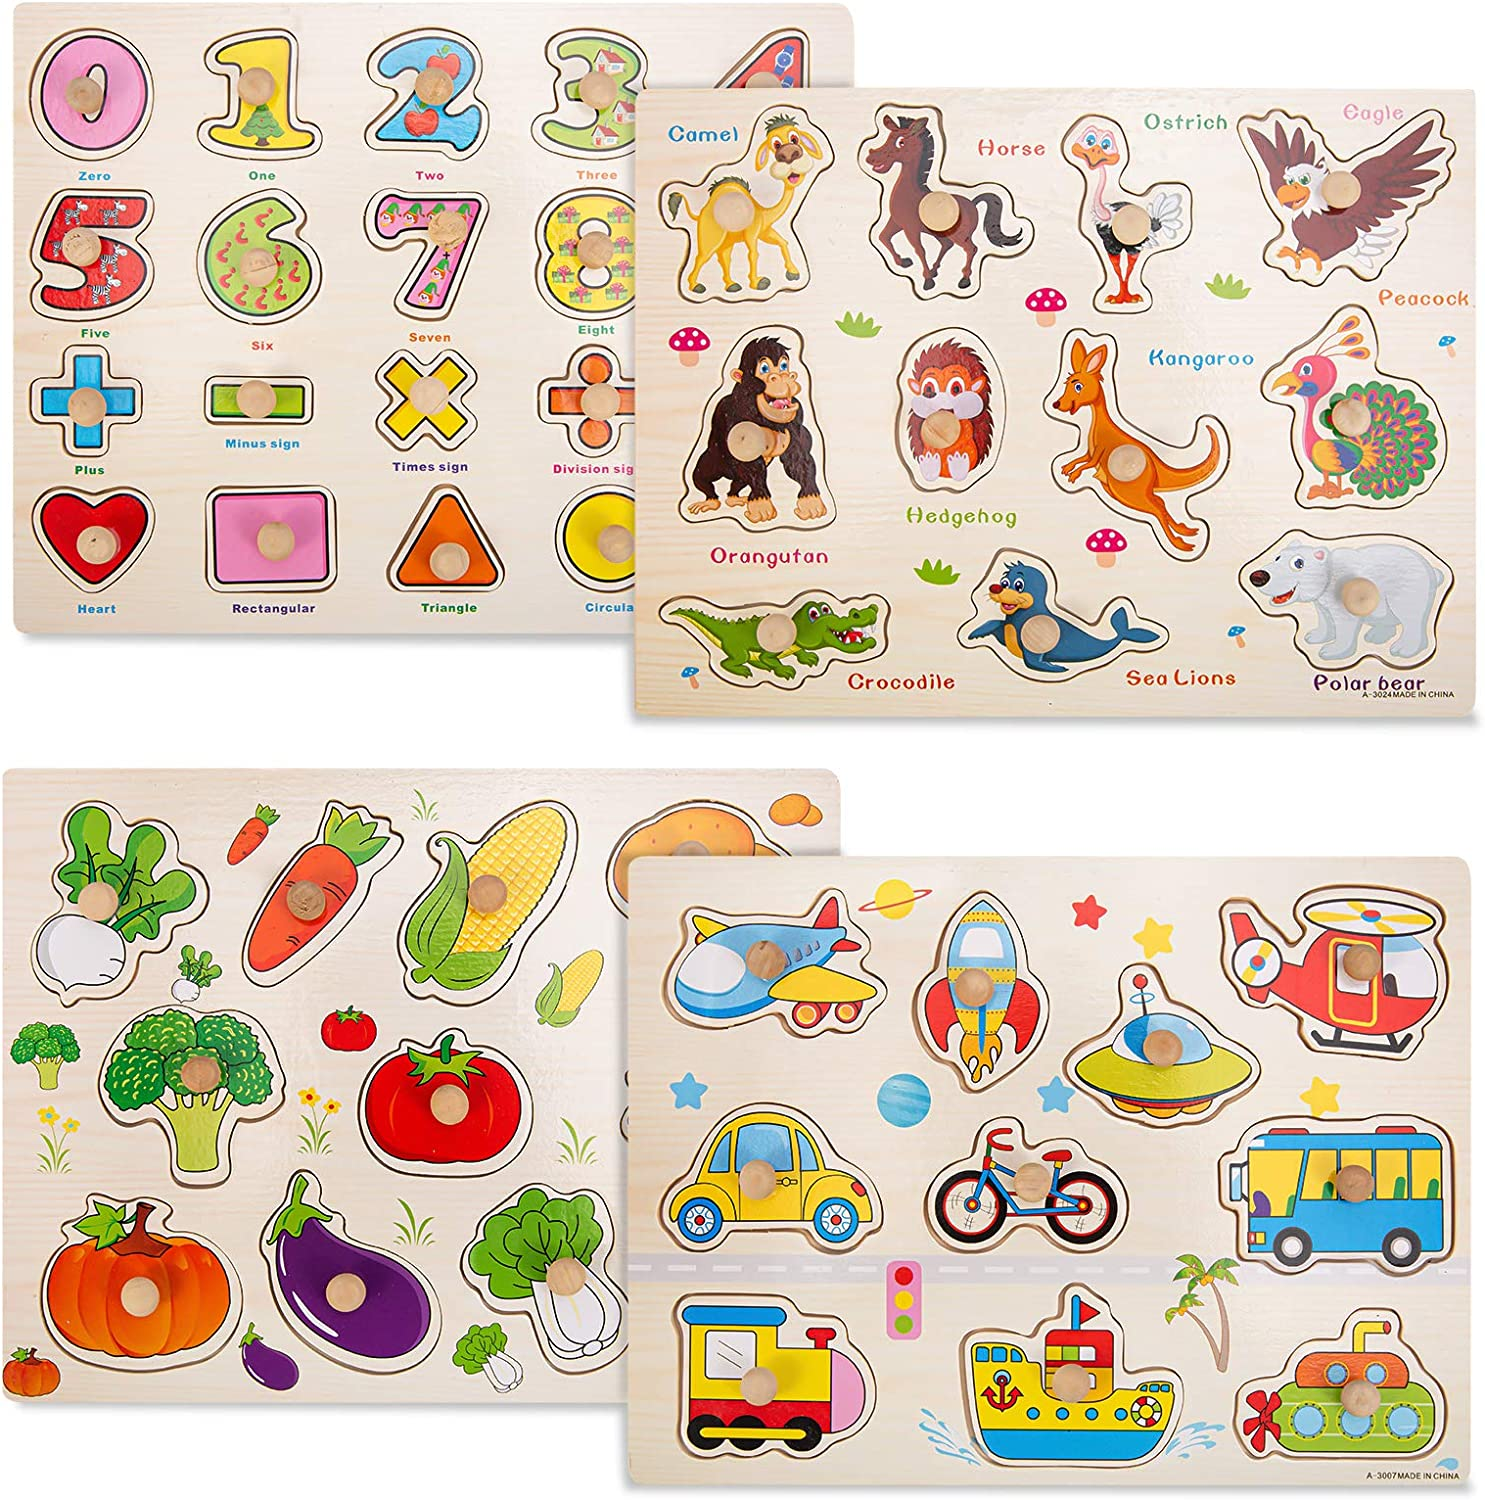 ThinkMax 4 Pcs Wooden Peg Puzzles for Toddlers 2 3 Years Old, Kids Knob Puzzles Set- Farm Animals, Numbers, Vegetables and Vehicles Learning Puzzles